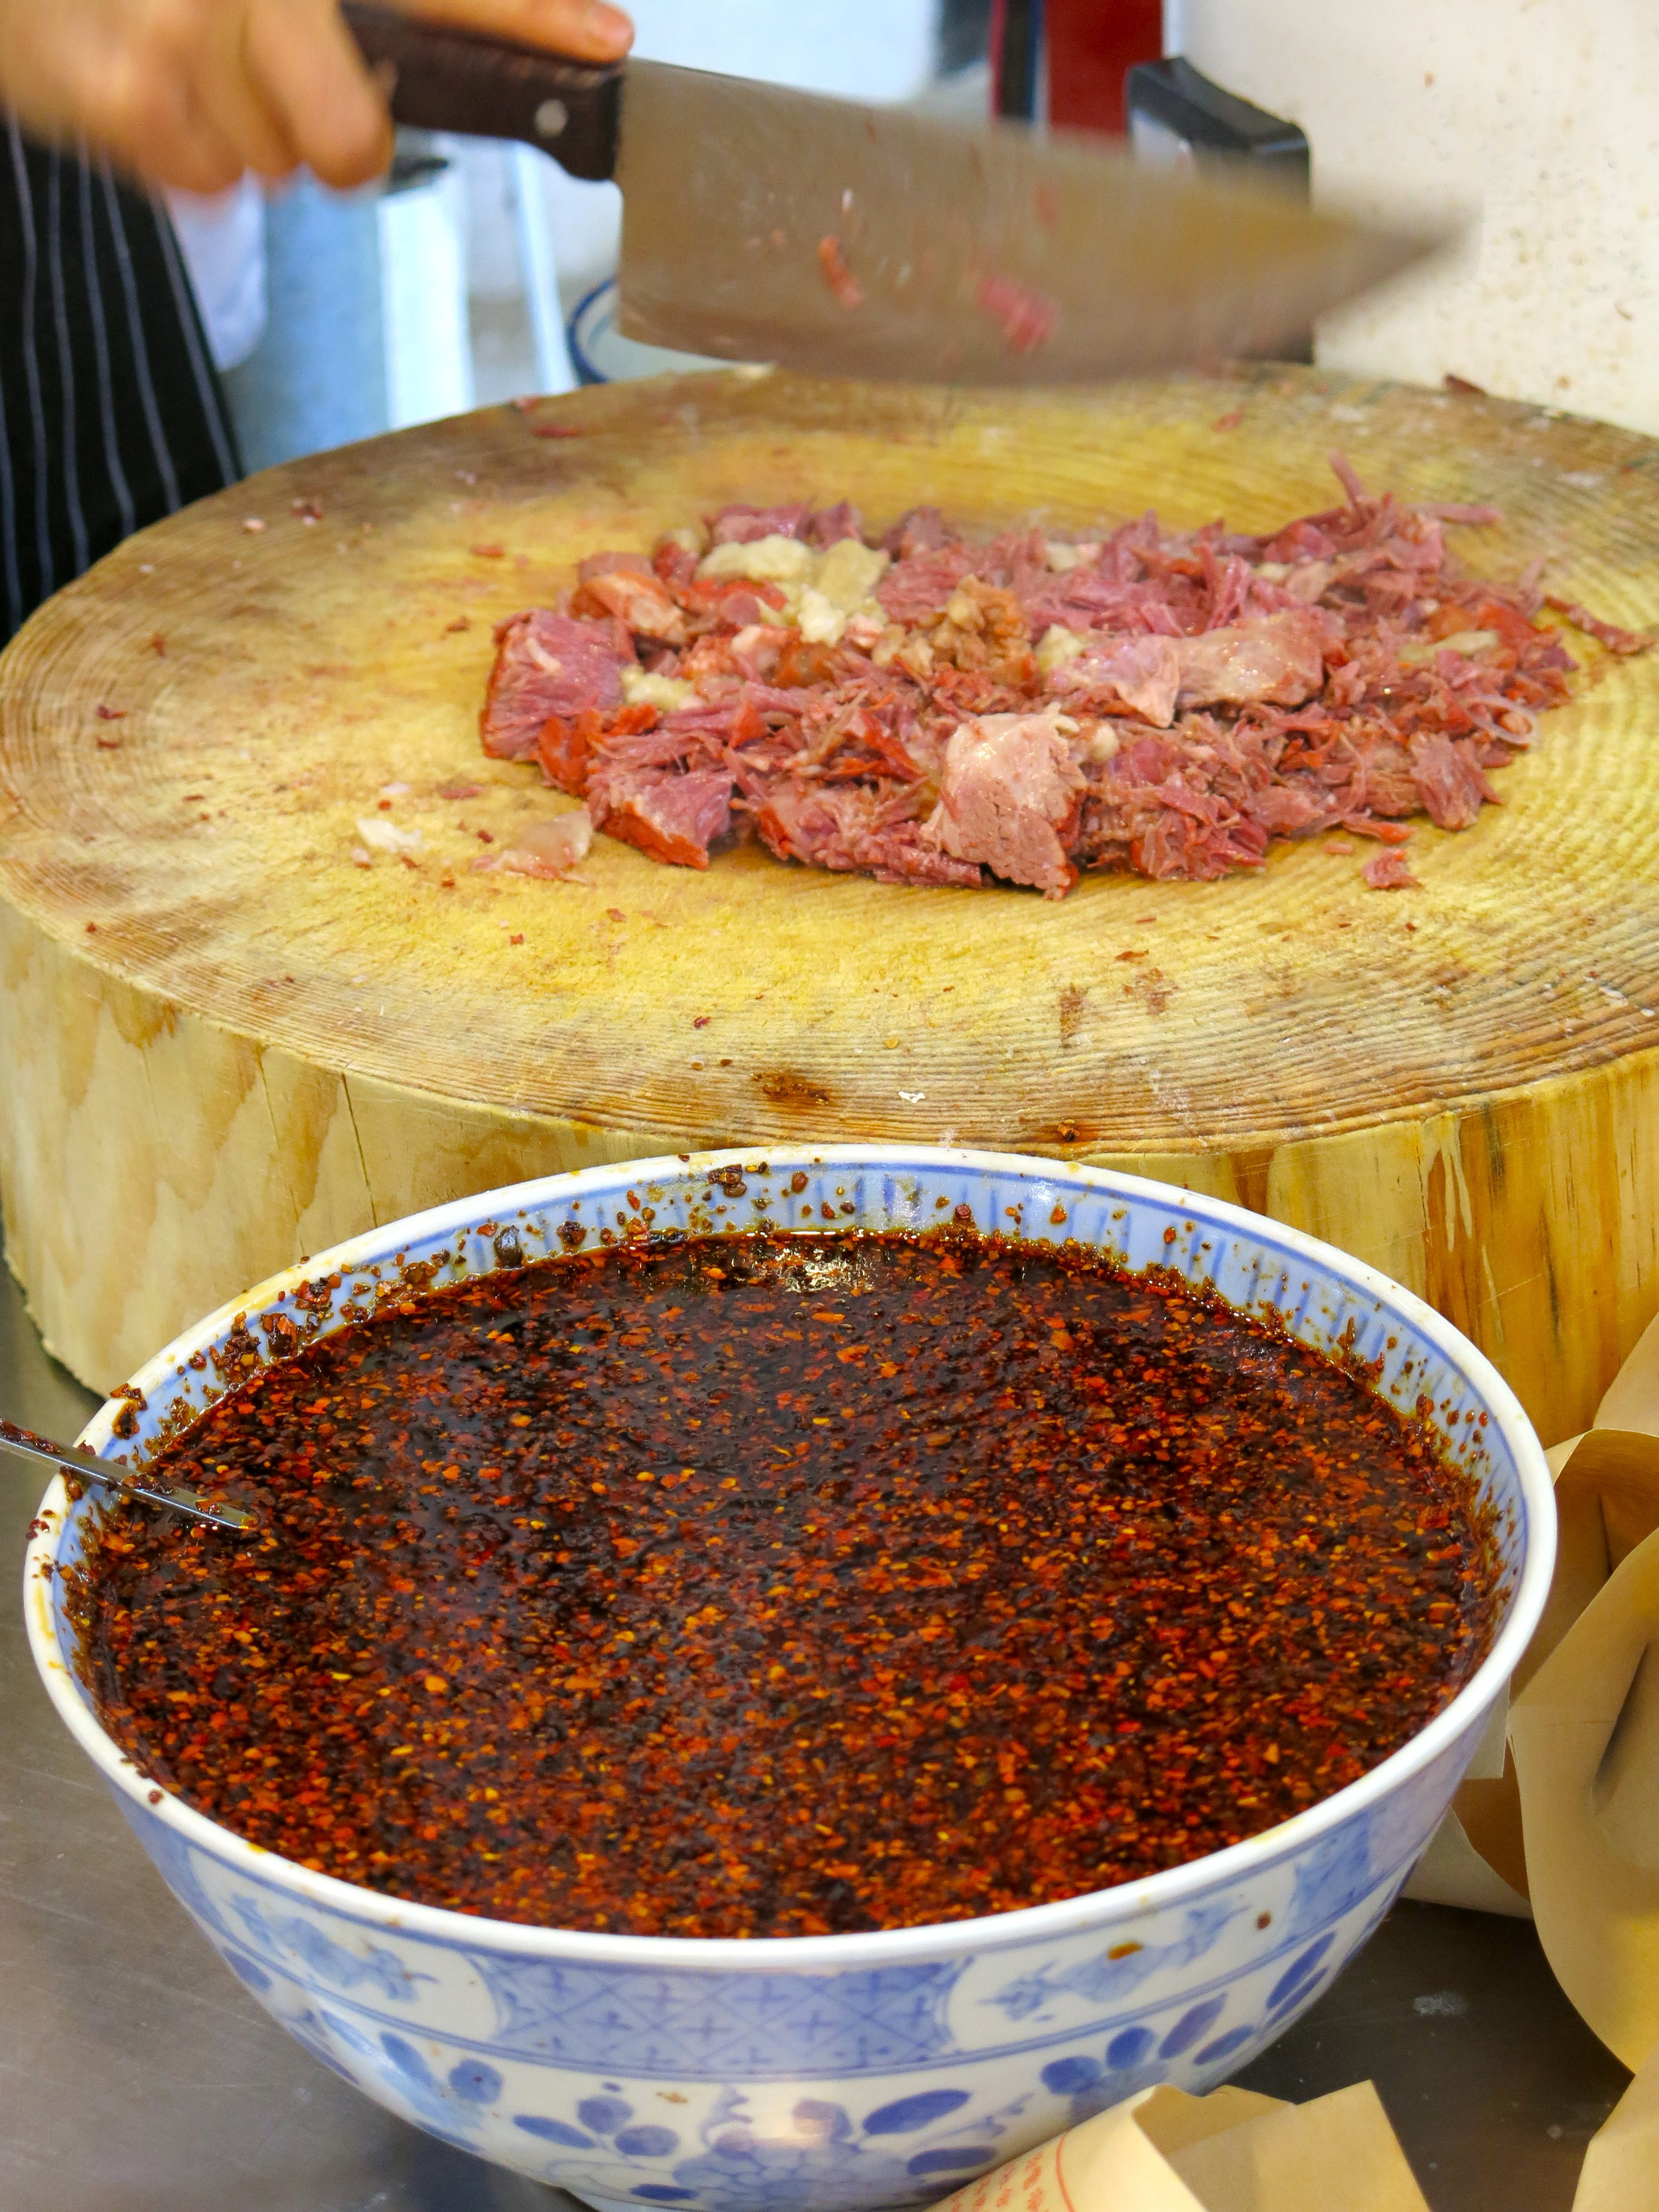 Roujiamo is made of minced meat and spices stuffed in a bread